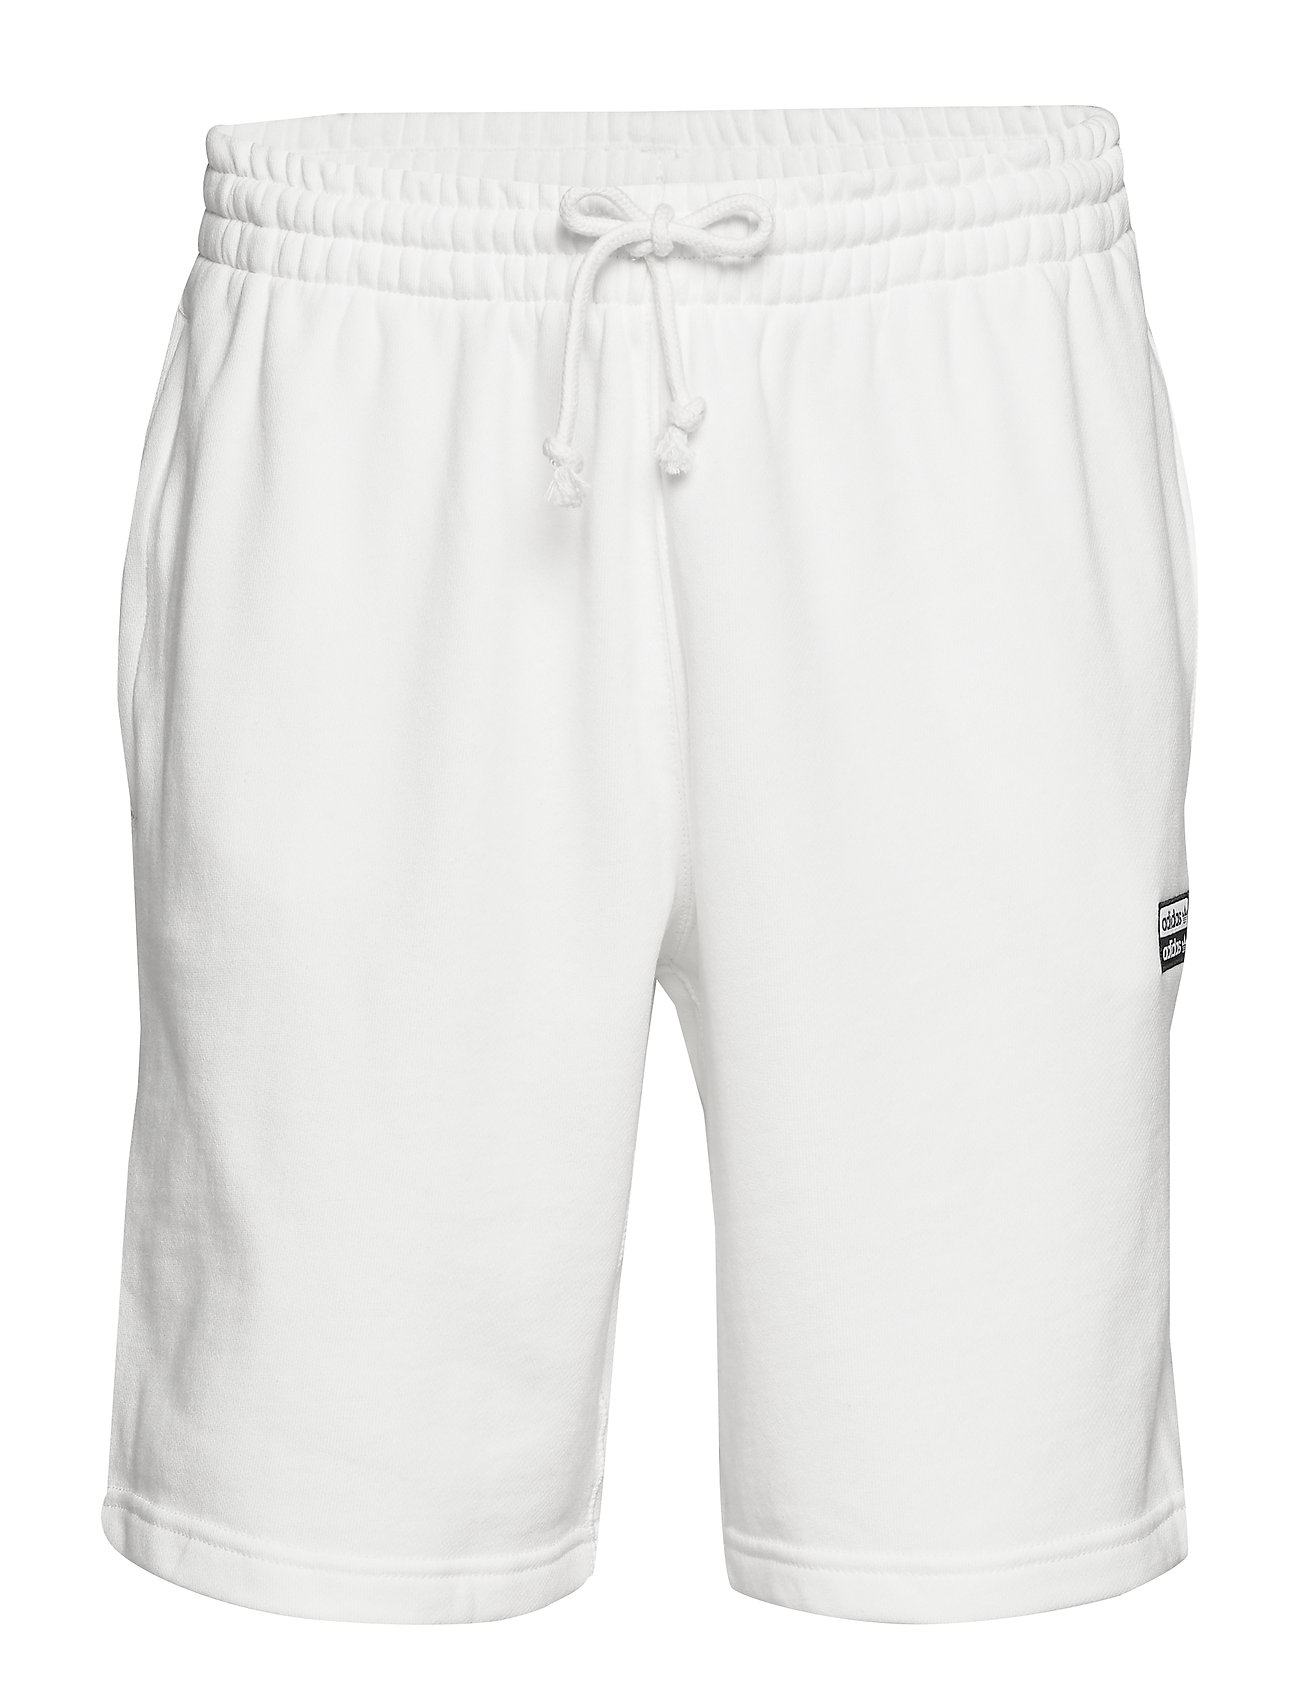 adidas Originals F SHORT - CWHITE